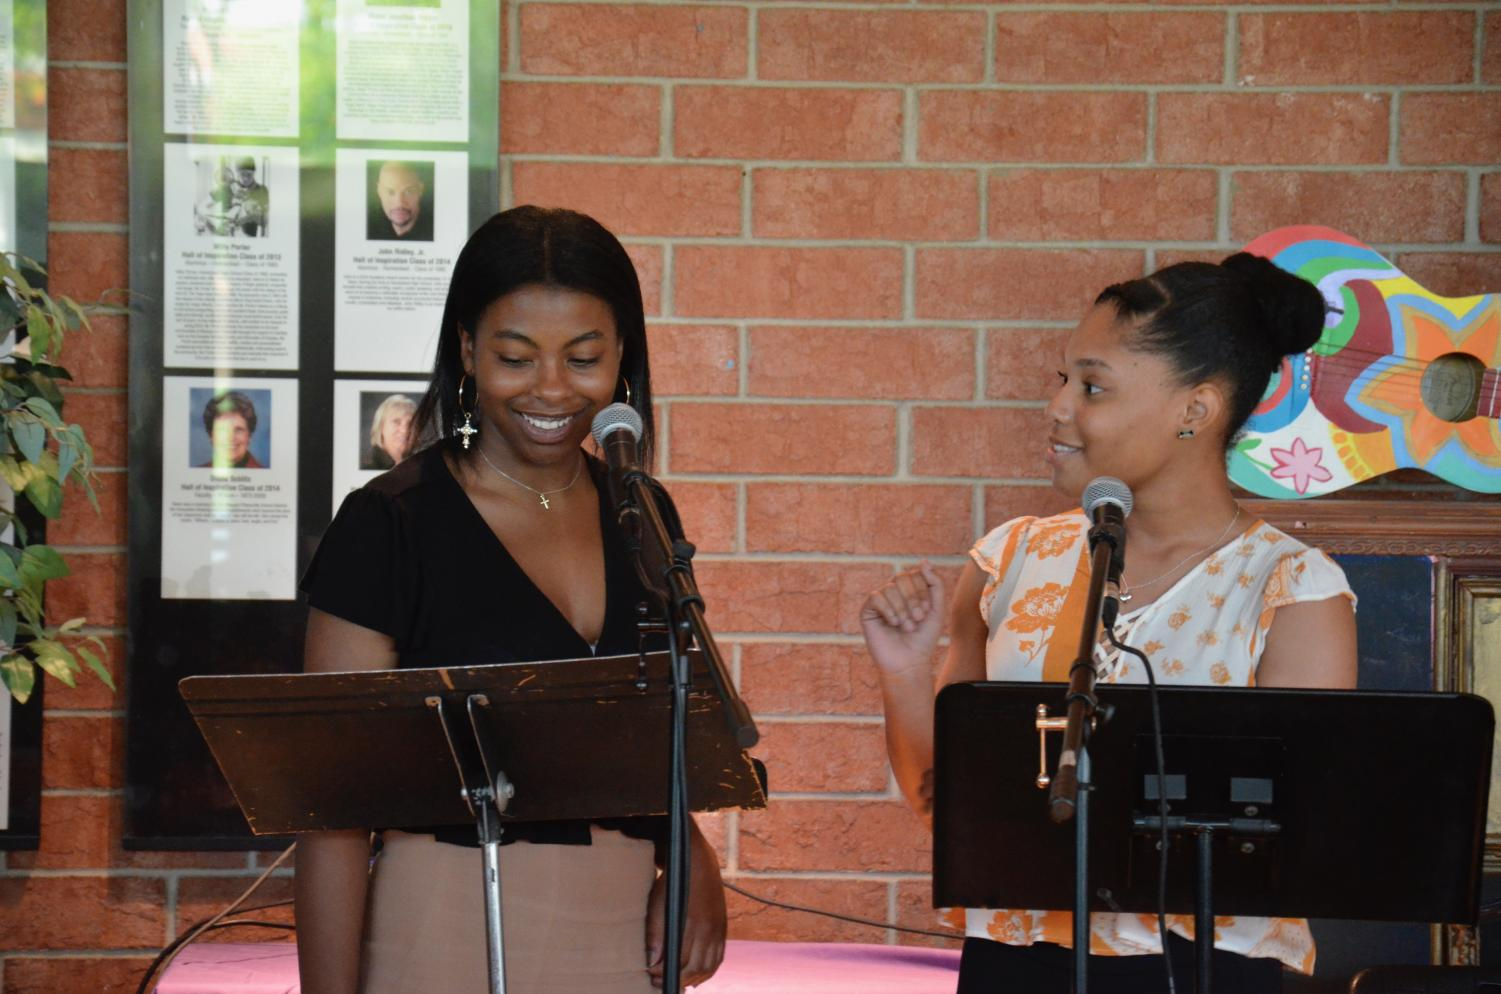 India Wilkerson and Brooke Bell share a laugh while performing a spoken word